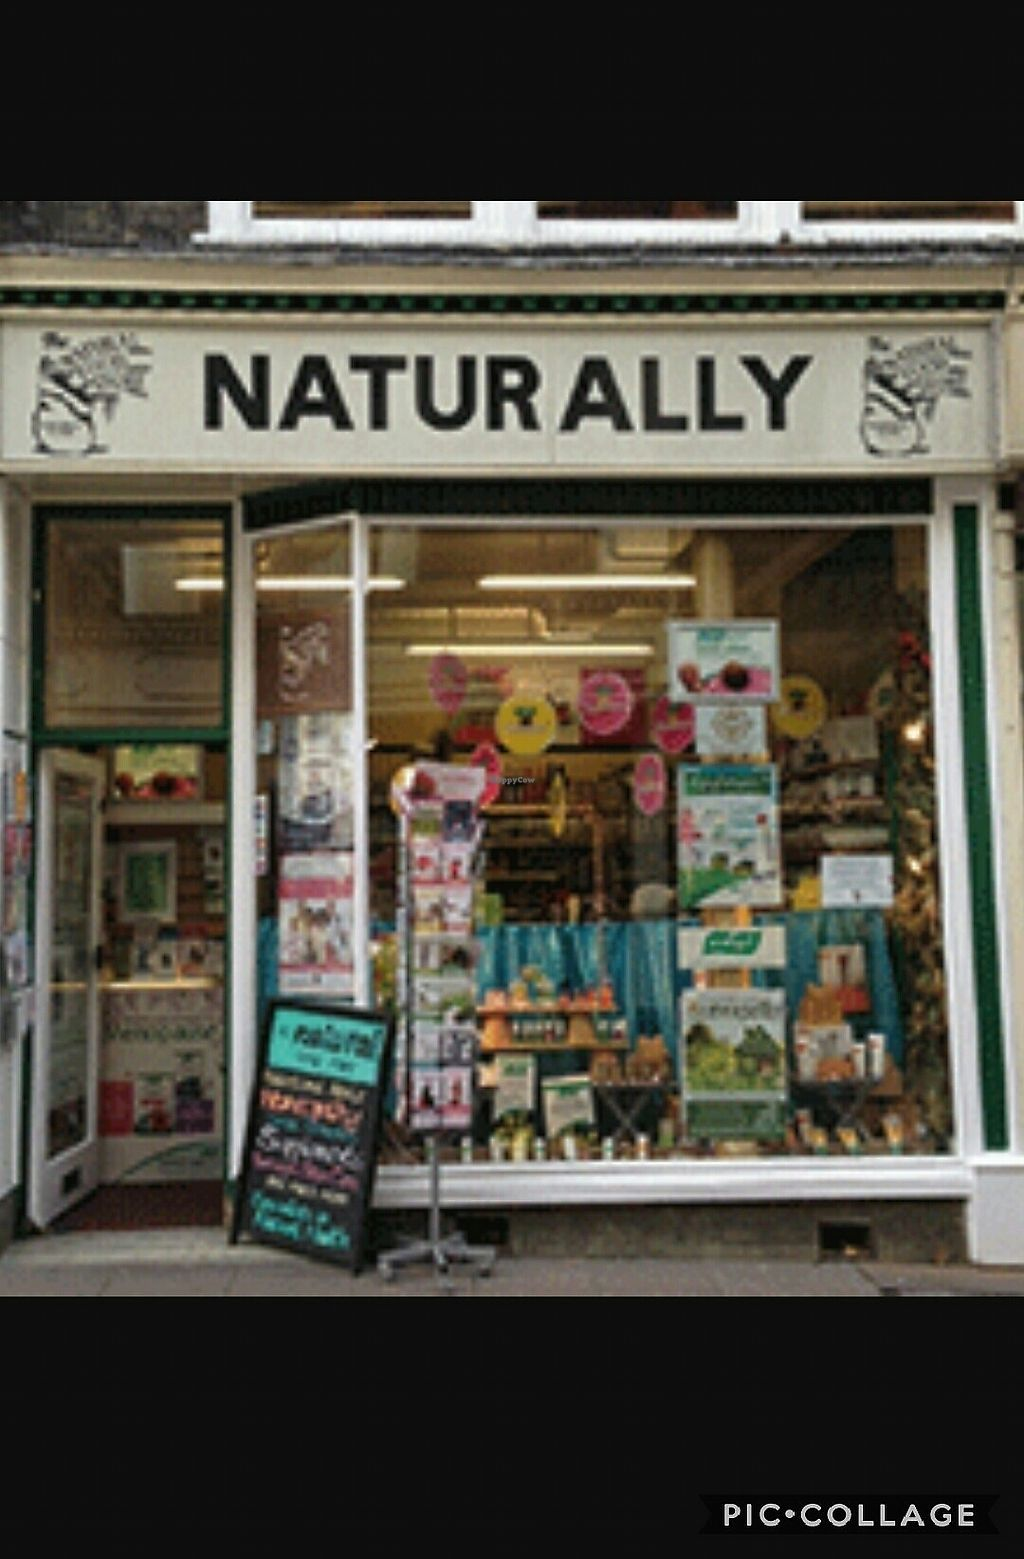 """Photo of The Natural Food Store  by <a href=""""/members/profile/louisejane87"""">louisejane87</a> <br/>The Natural Food Store <br/> July 23, 2017  - <a href='/contact/abuse/image/96833/283598'>Report</a>"""